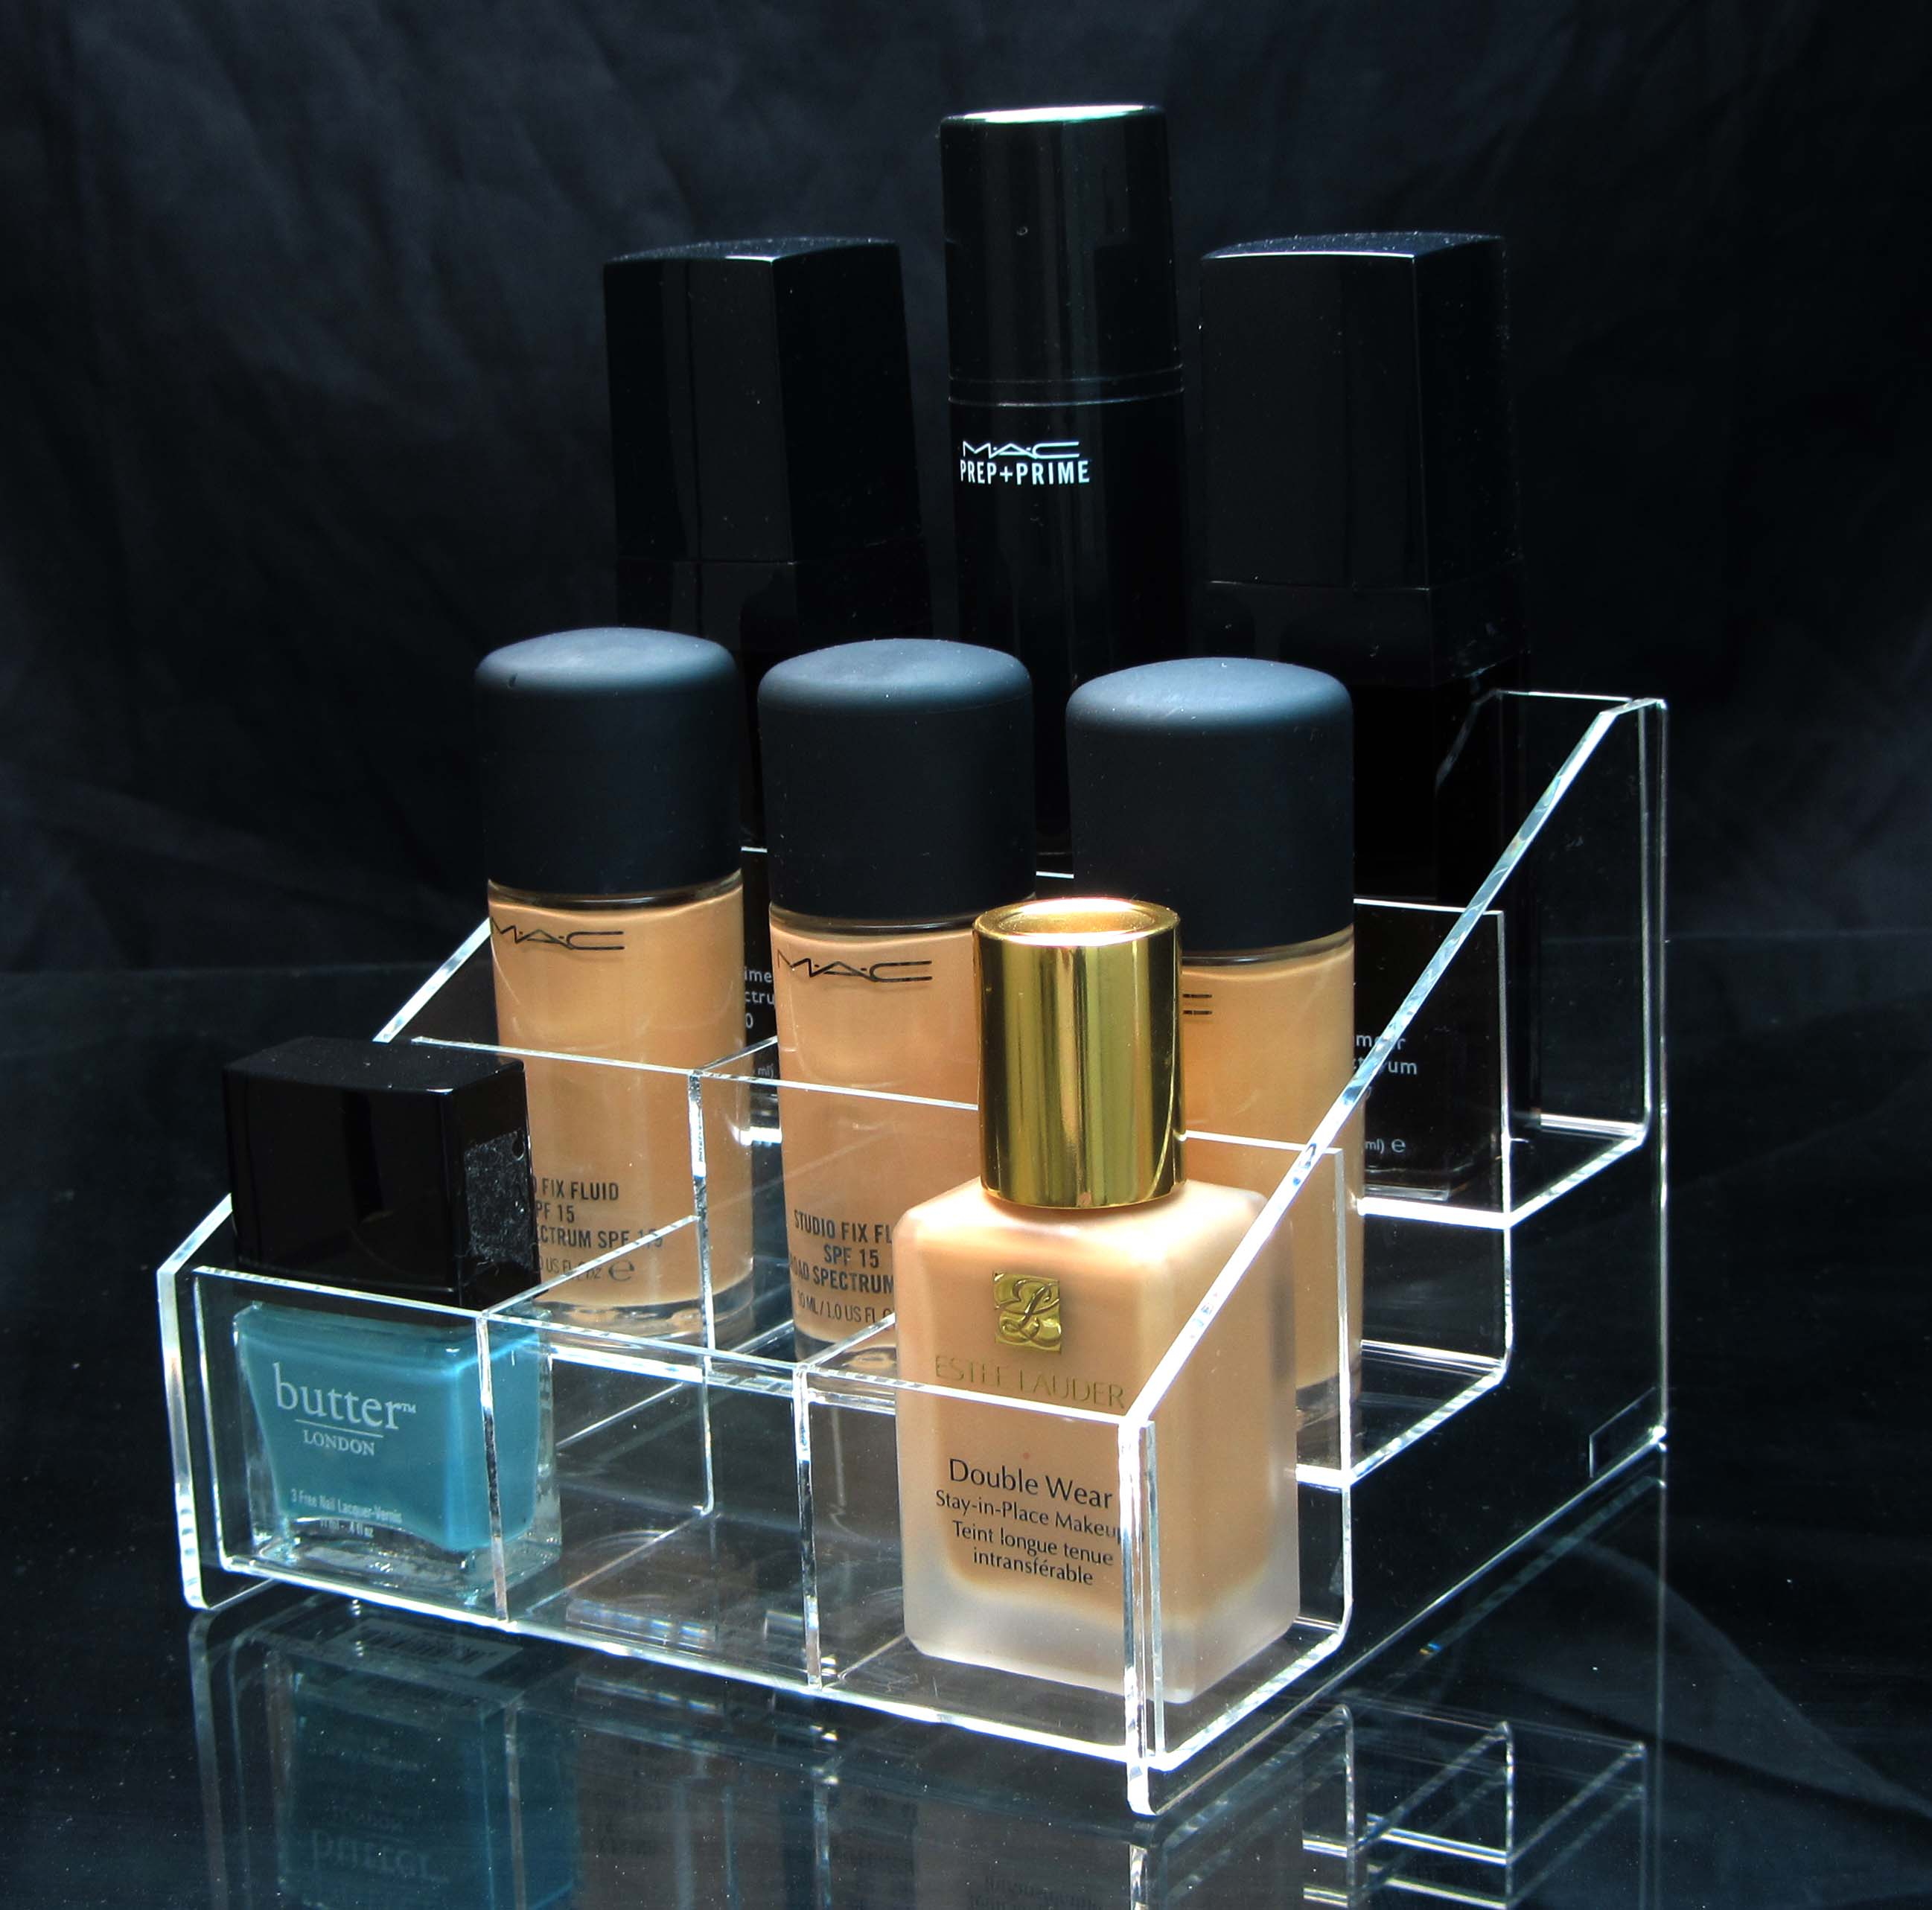 square-acrylic-nail-polish-cosmetic-organizer-display-5680-c.jpg